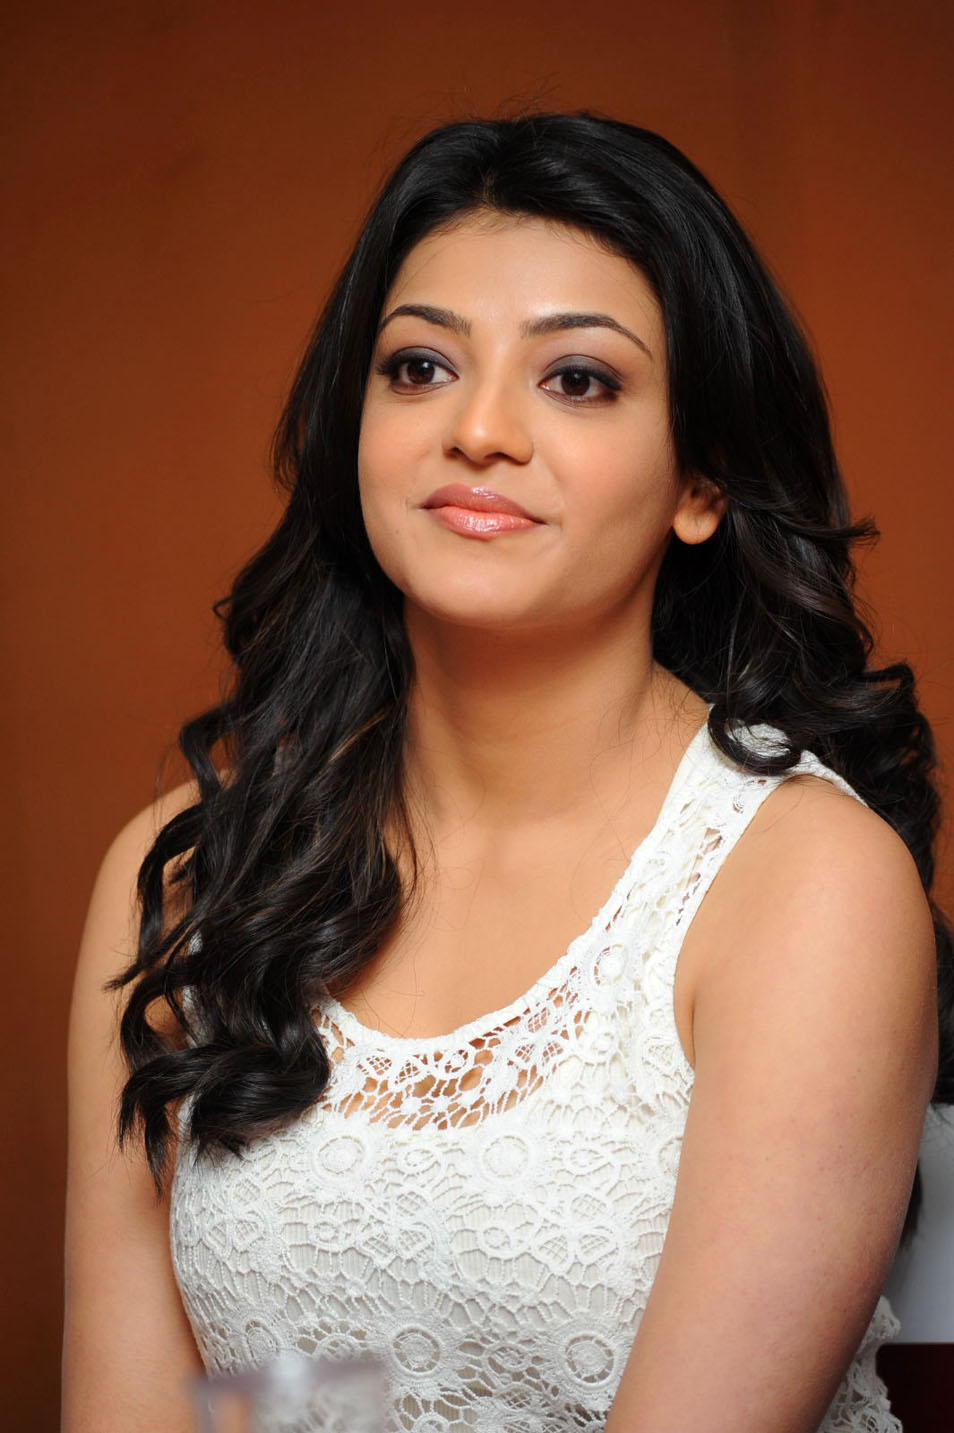 beautiful and cute heroine - kajal agarwal consumer review